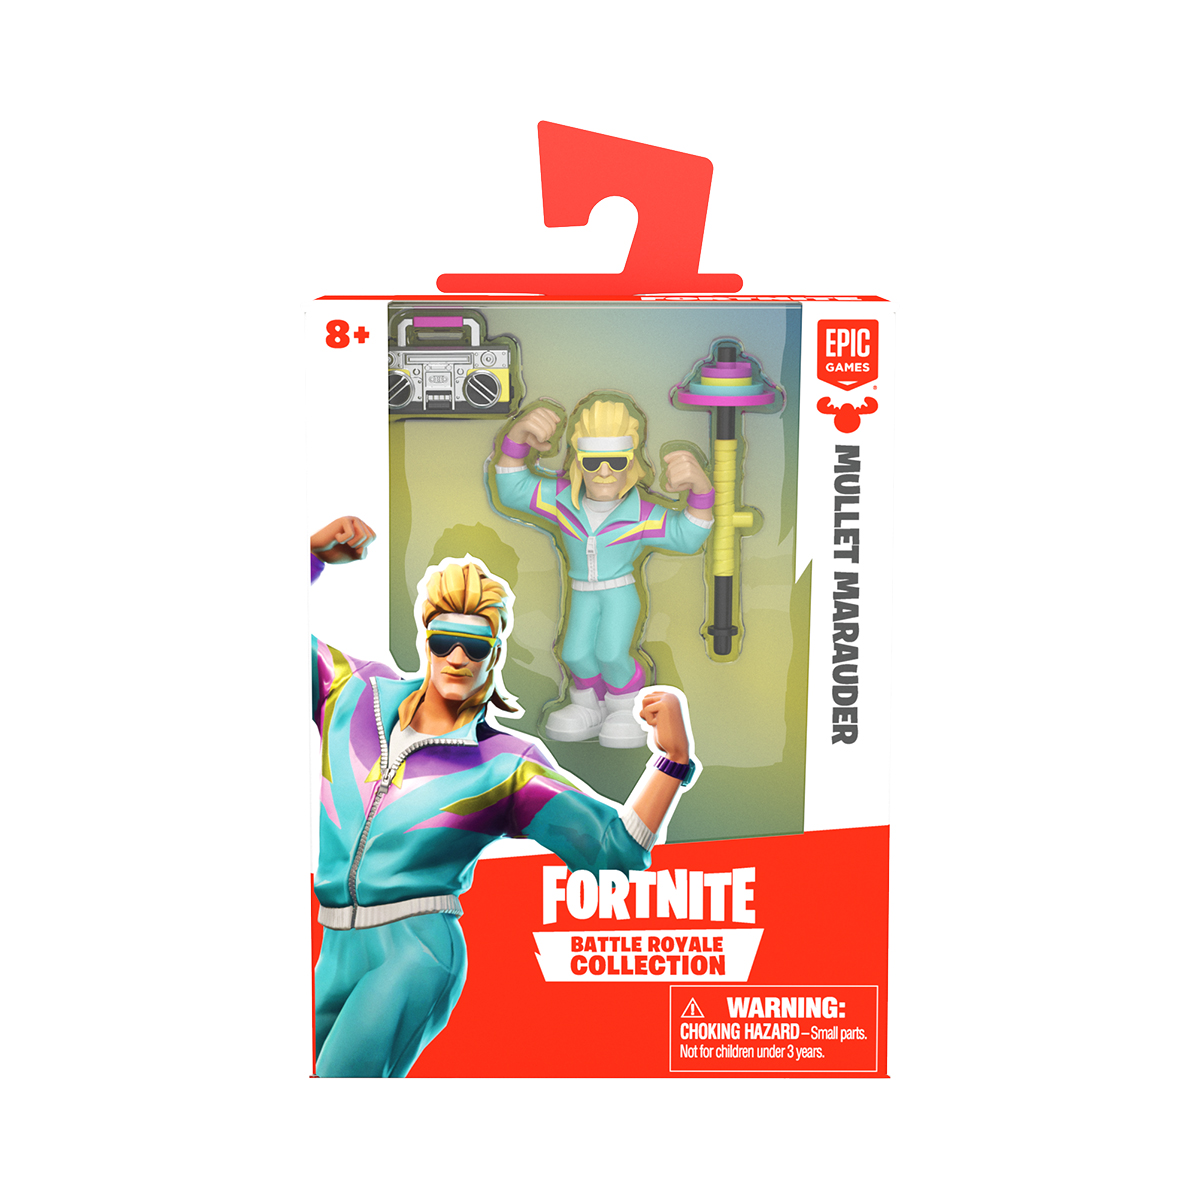 Figurina 2 in 1 Fortnite Battle Royale, Mullet Marauder, S1 W3